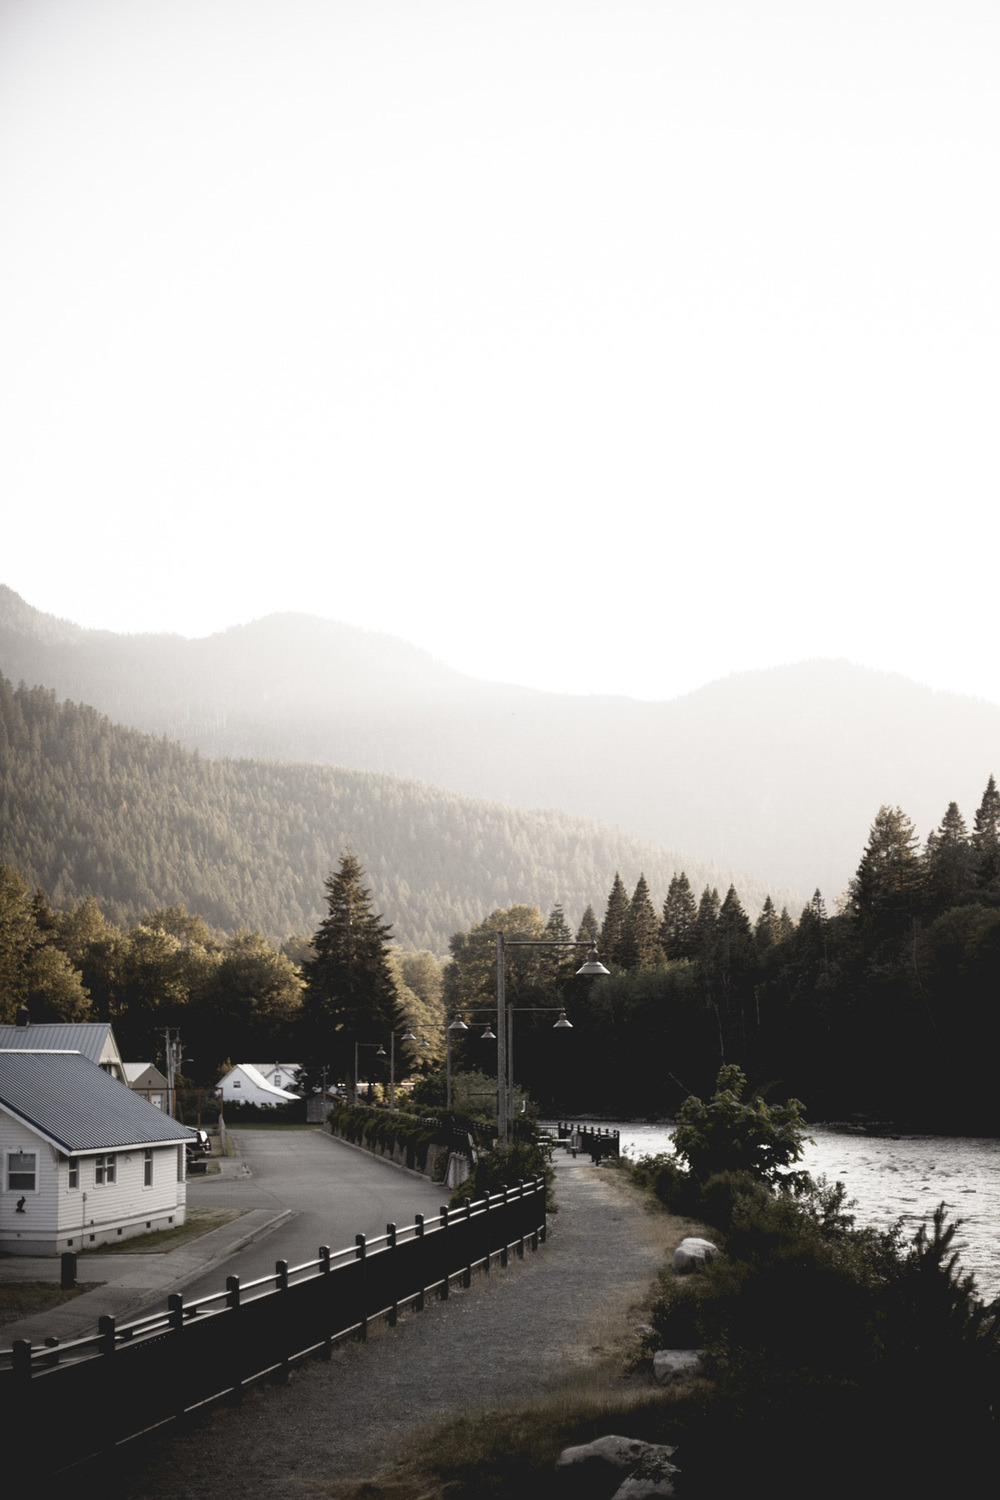 Town of Skykomish, Washington   May 2015